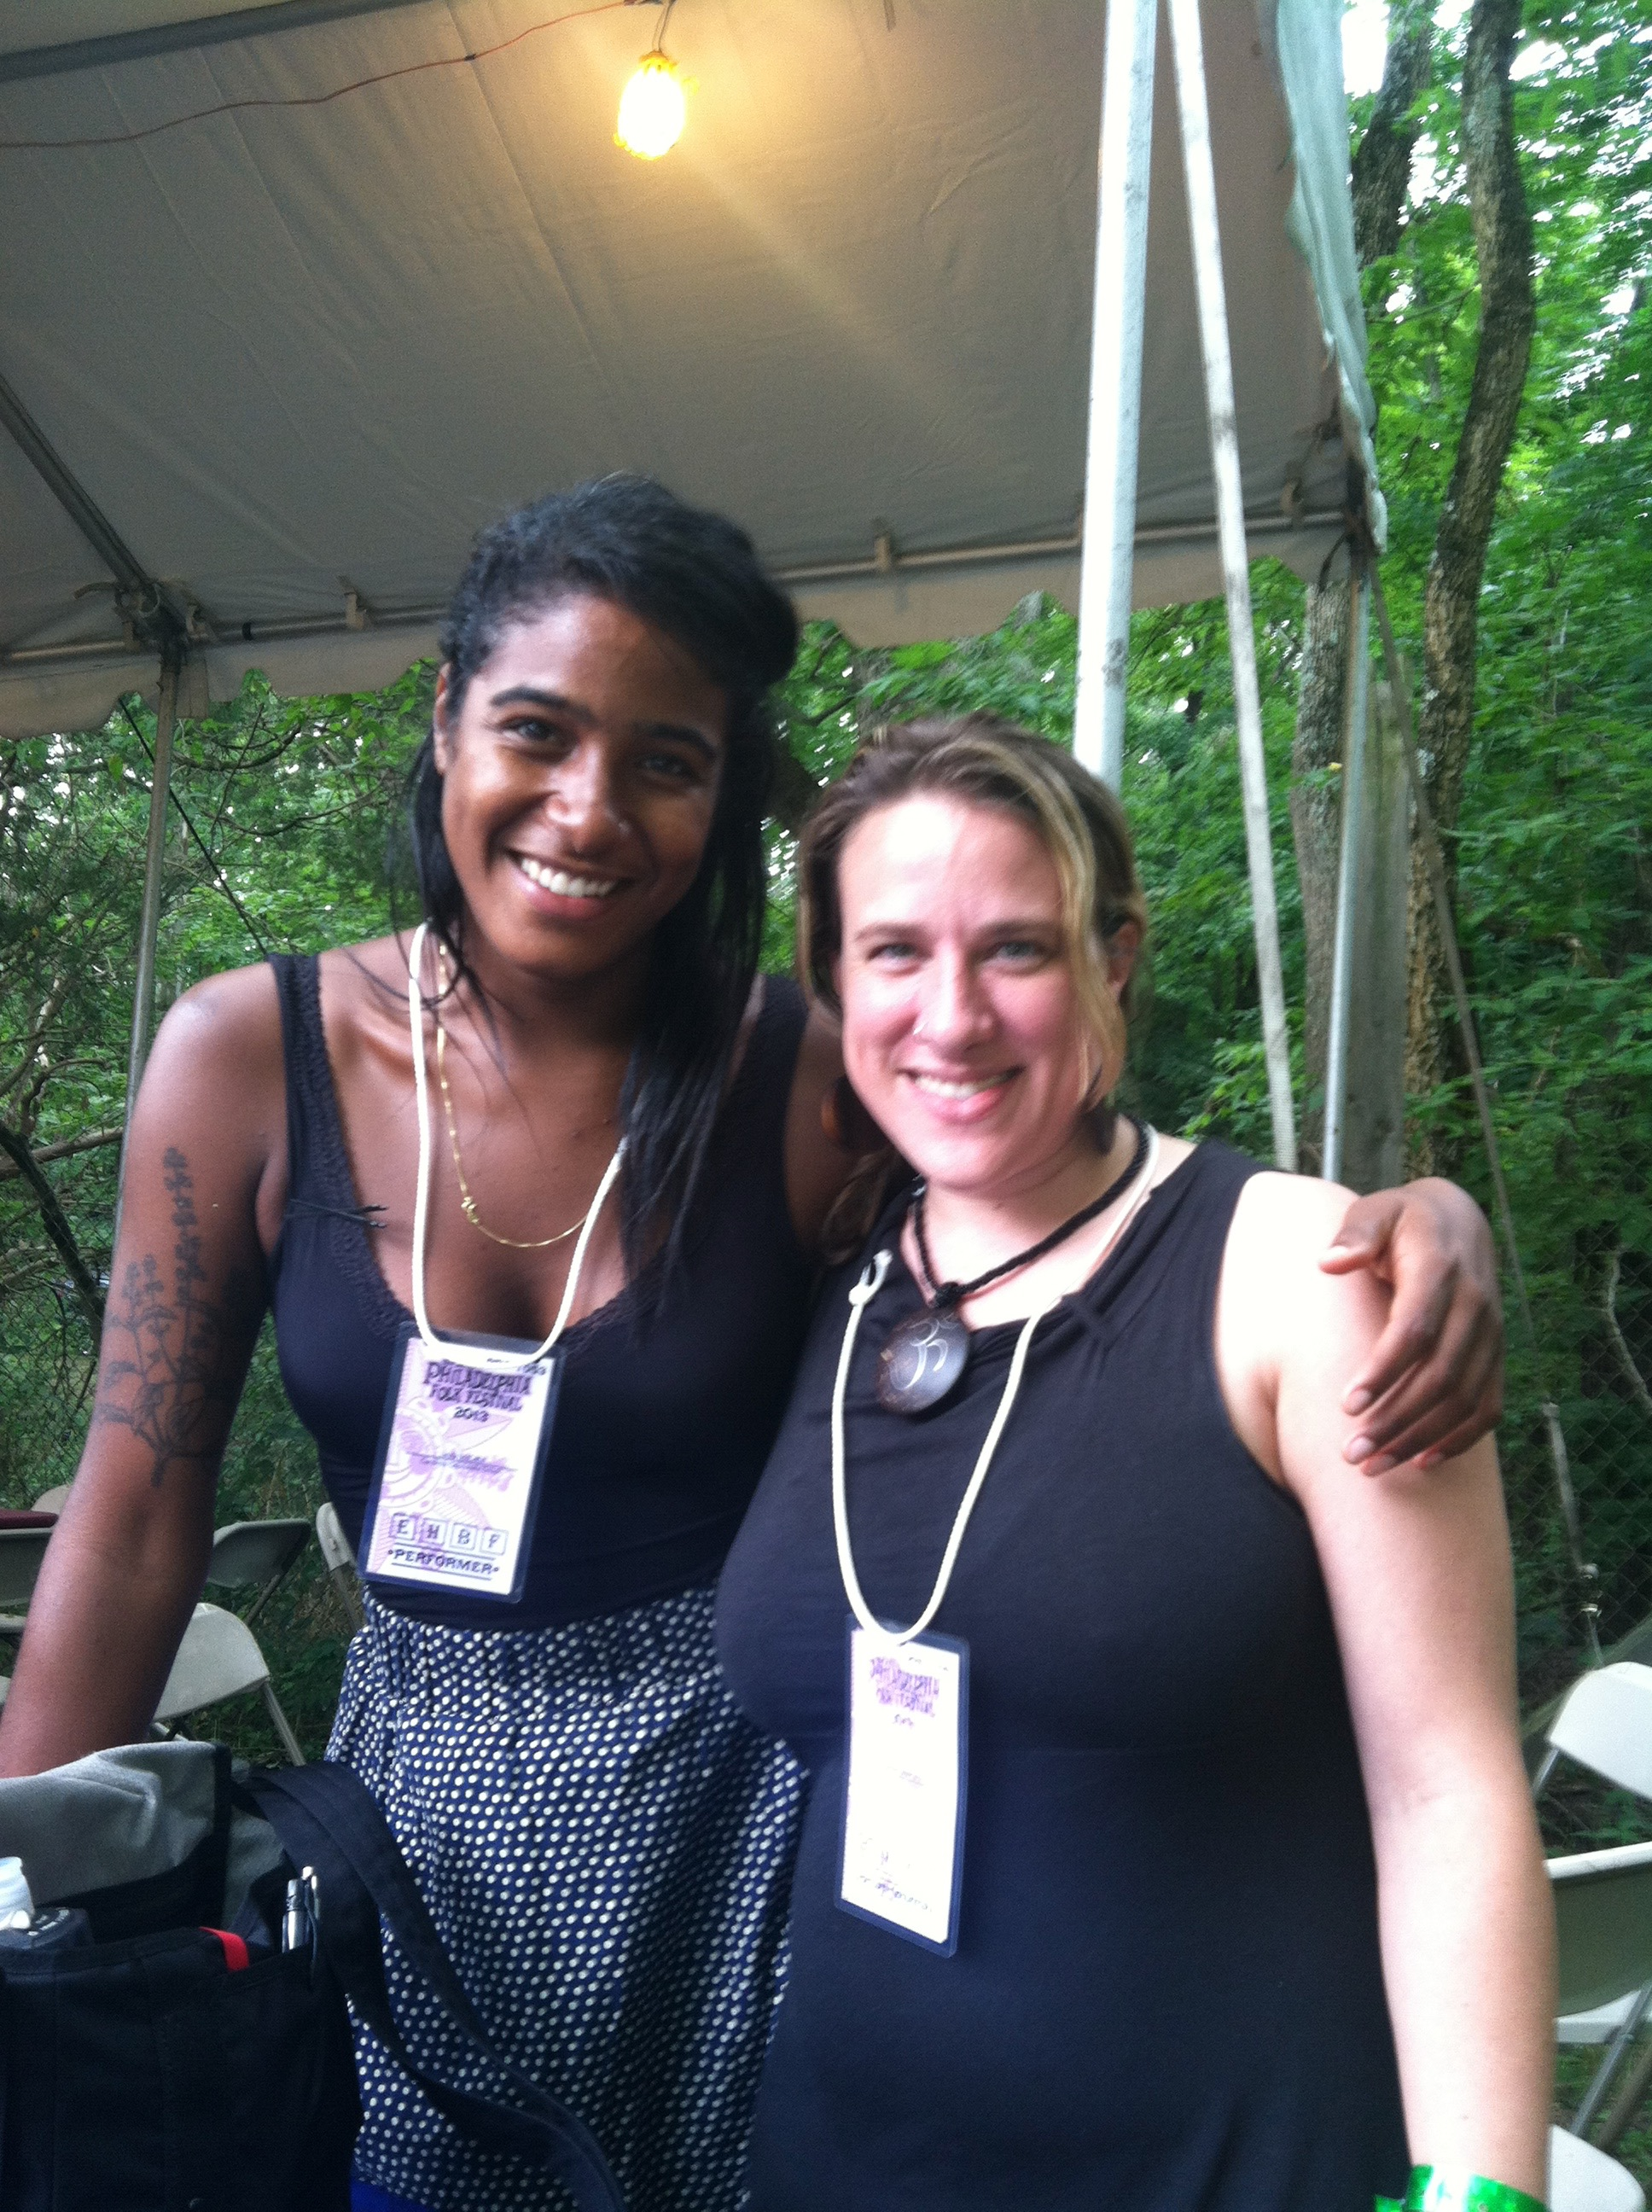 Backstage at the Philadelphia Folk Festival with Leyla McCalla from the Carolina Chocolate Drops